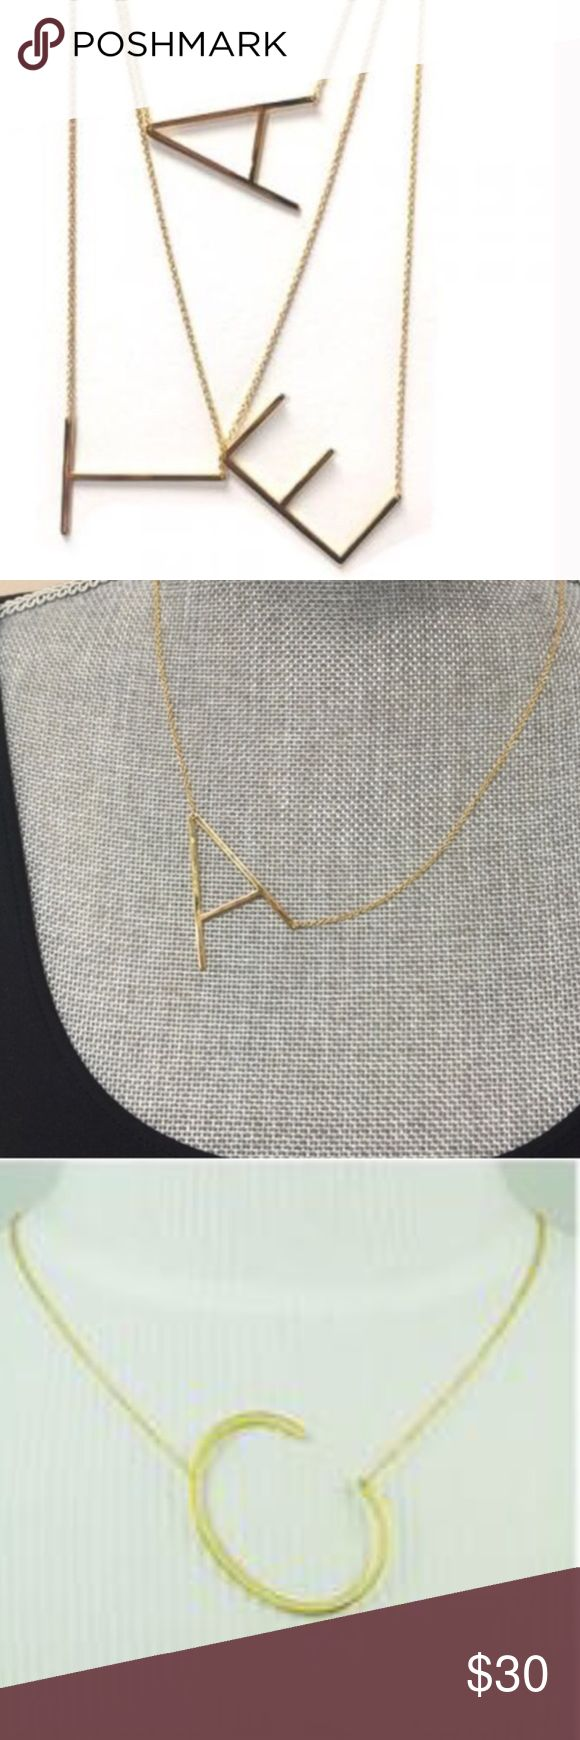 "Large Sideways Initial Necklace, NWT & Boxed Each initial is approximately 1 1/2"" X 3/4"" wide and are a polished gold plated finish. Very modern and sophisticated block letter initial. 18""-20"" adjustable.chain. Price is firm. ZokyDoky Jewelry Necklaces"